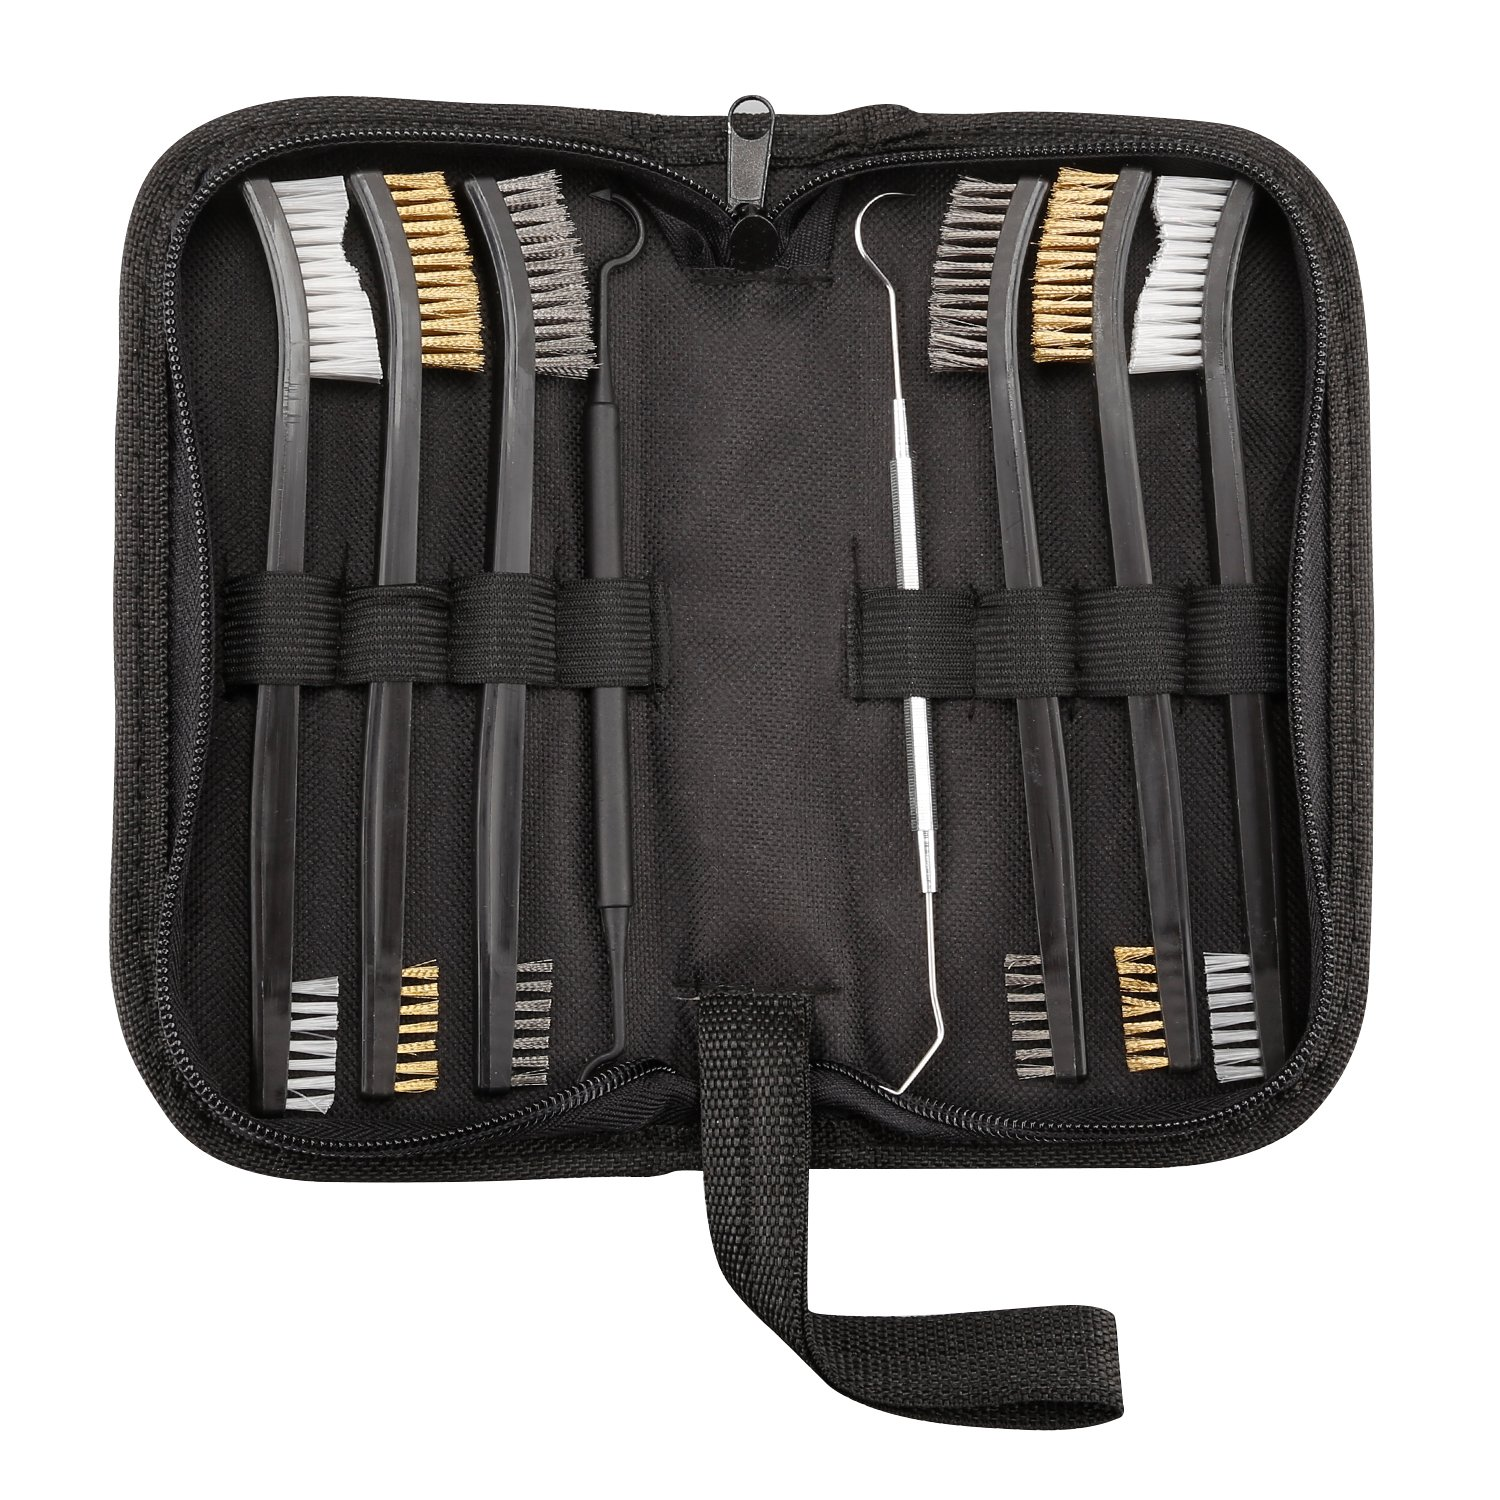 Gun Cleaning Brush and Pick Set, Double Ended Nylon/Brass/Stainless Steel Gun Cleaning Set and 2 Double Ended Picks, 8 Pcs Gun Cleaning Kit